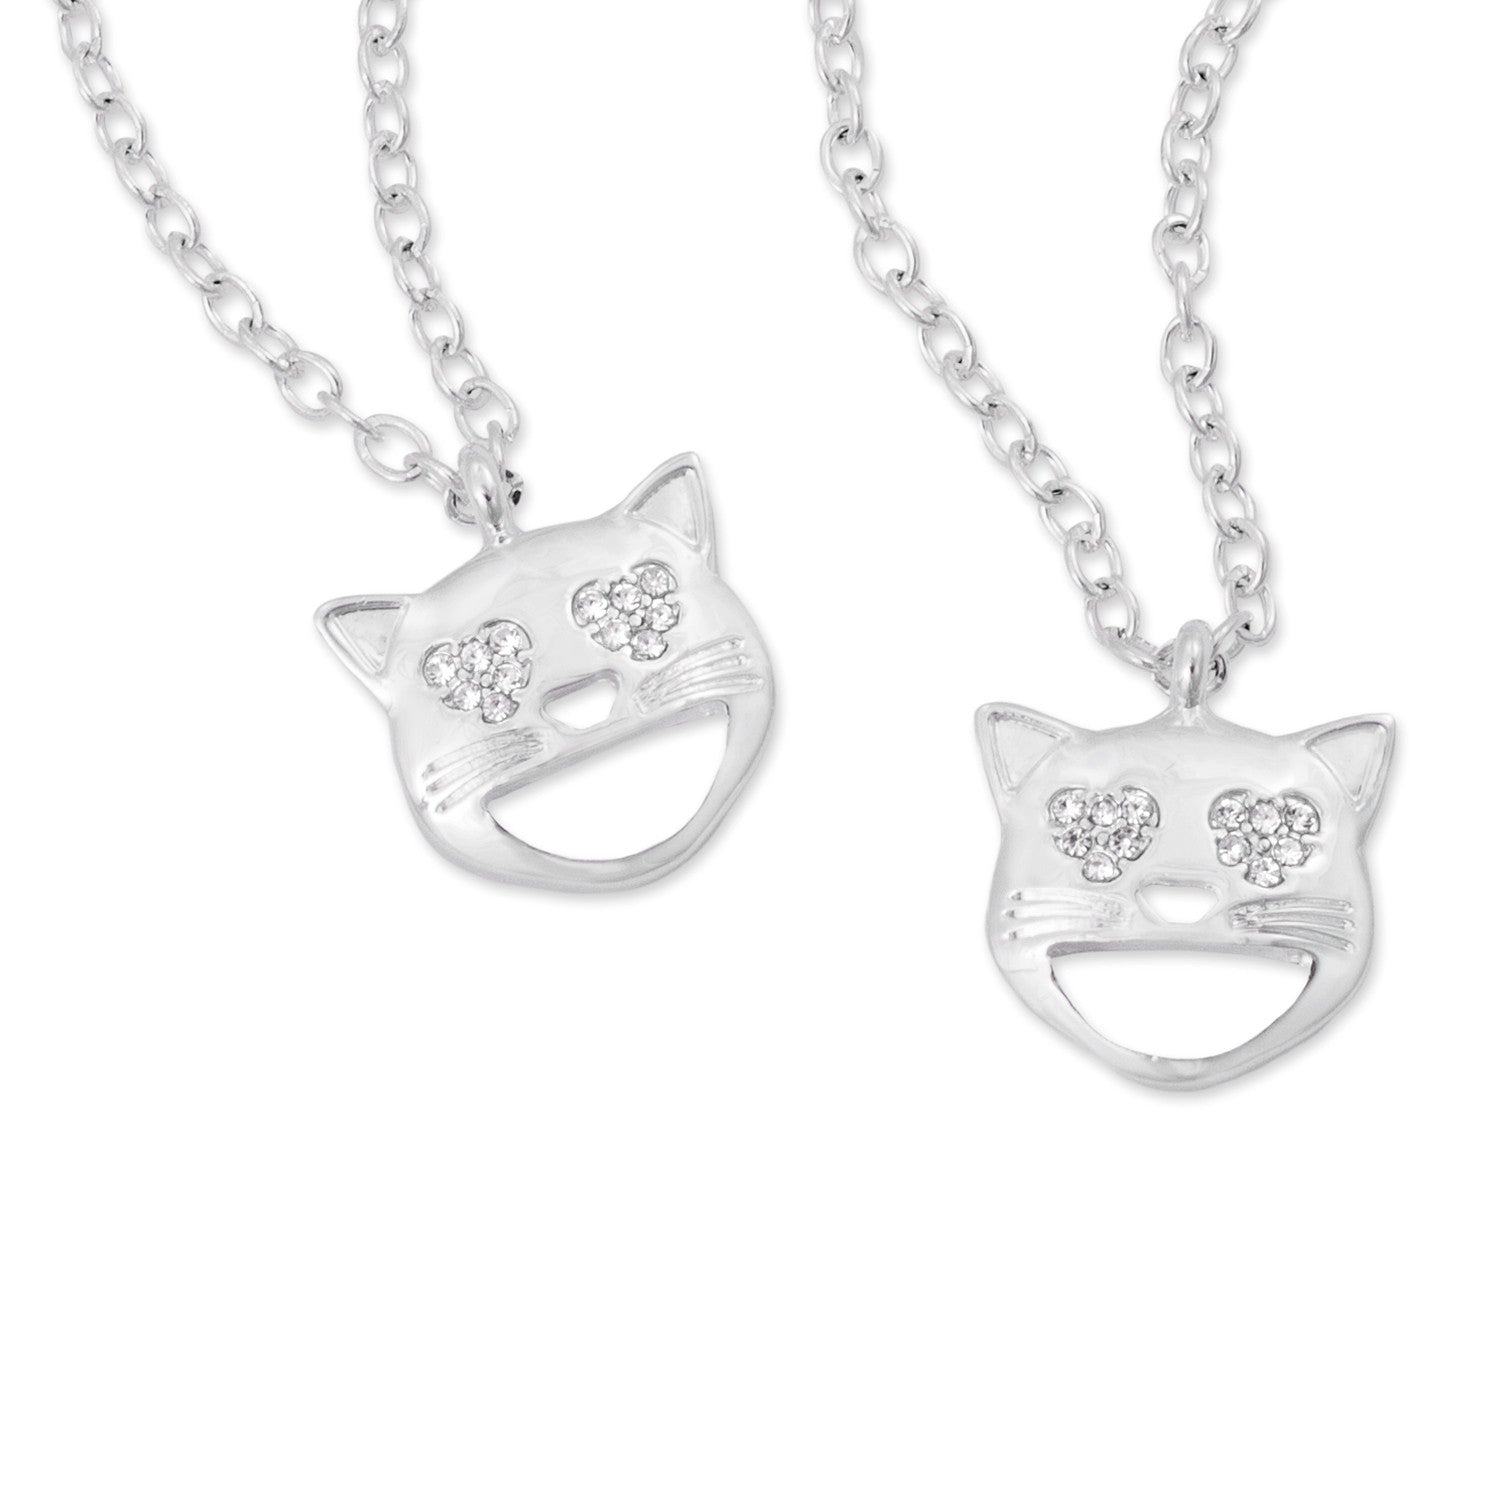 Emoji® Cat Heart Eyes Necklace & Bracelet Set